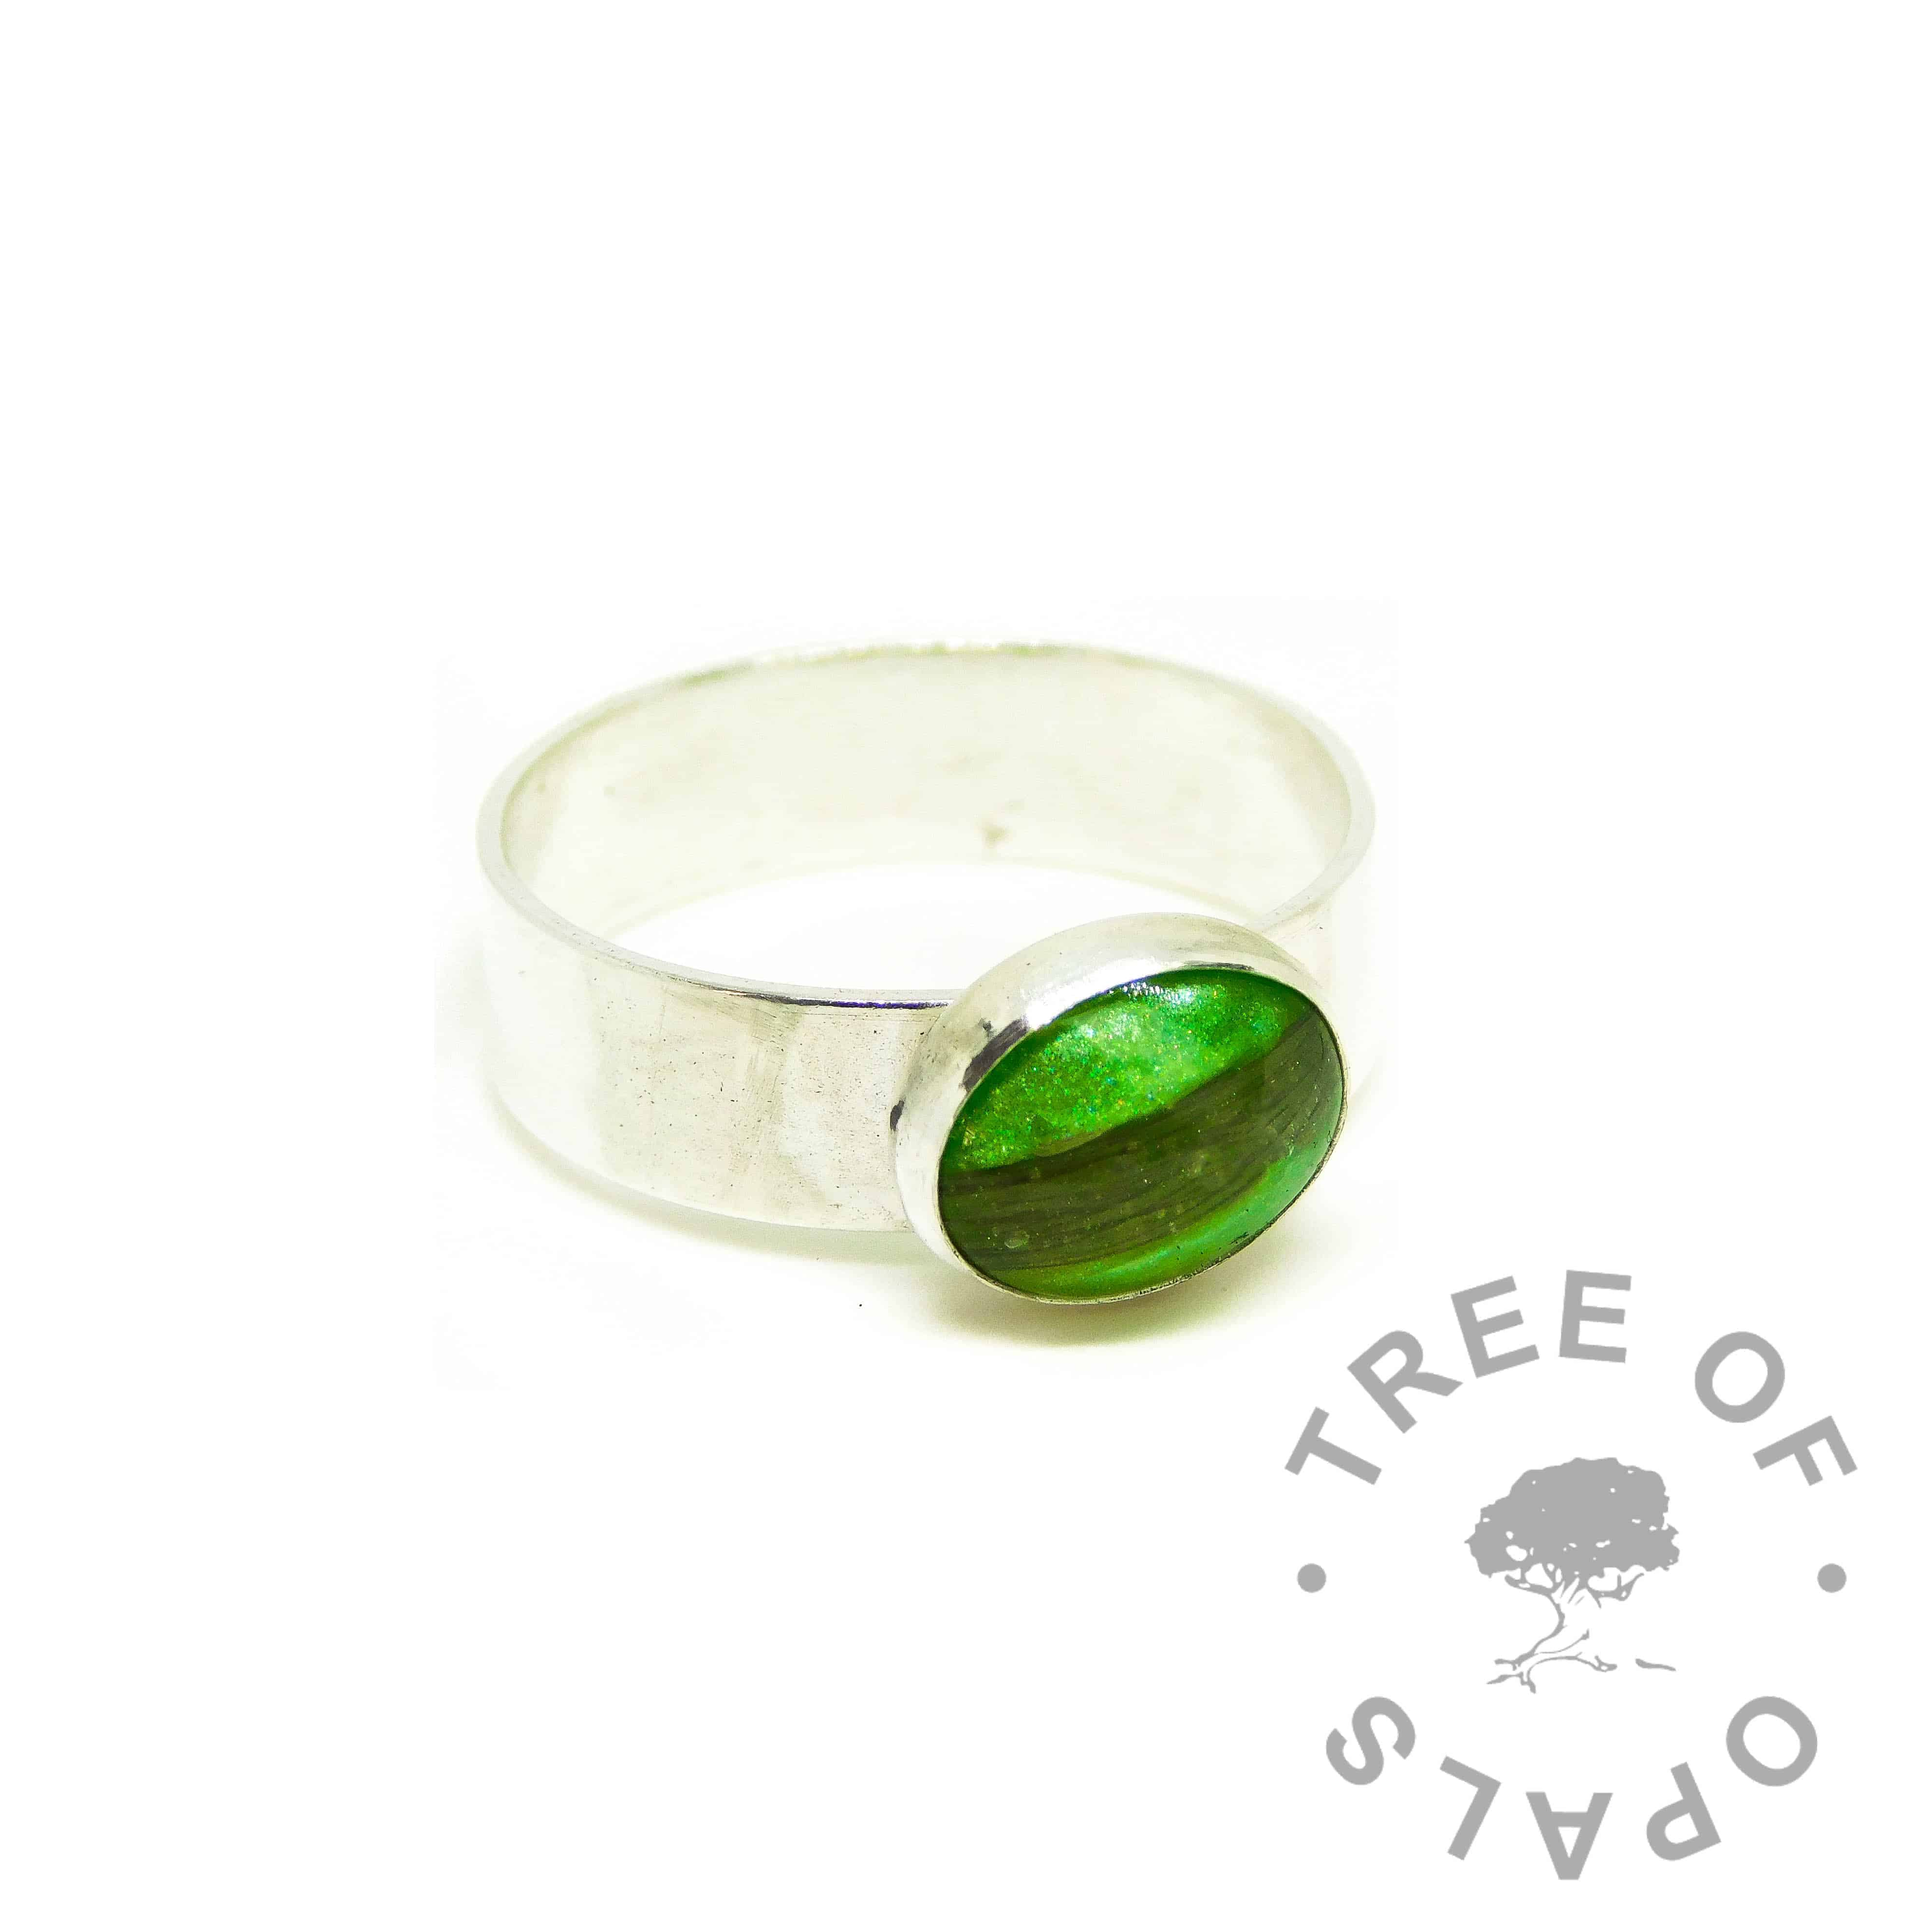 green hair ring, basilisk green resin sparkle mix, 6mm wide shiny Argentium silver band